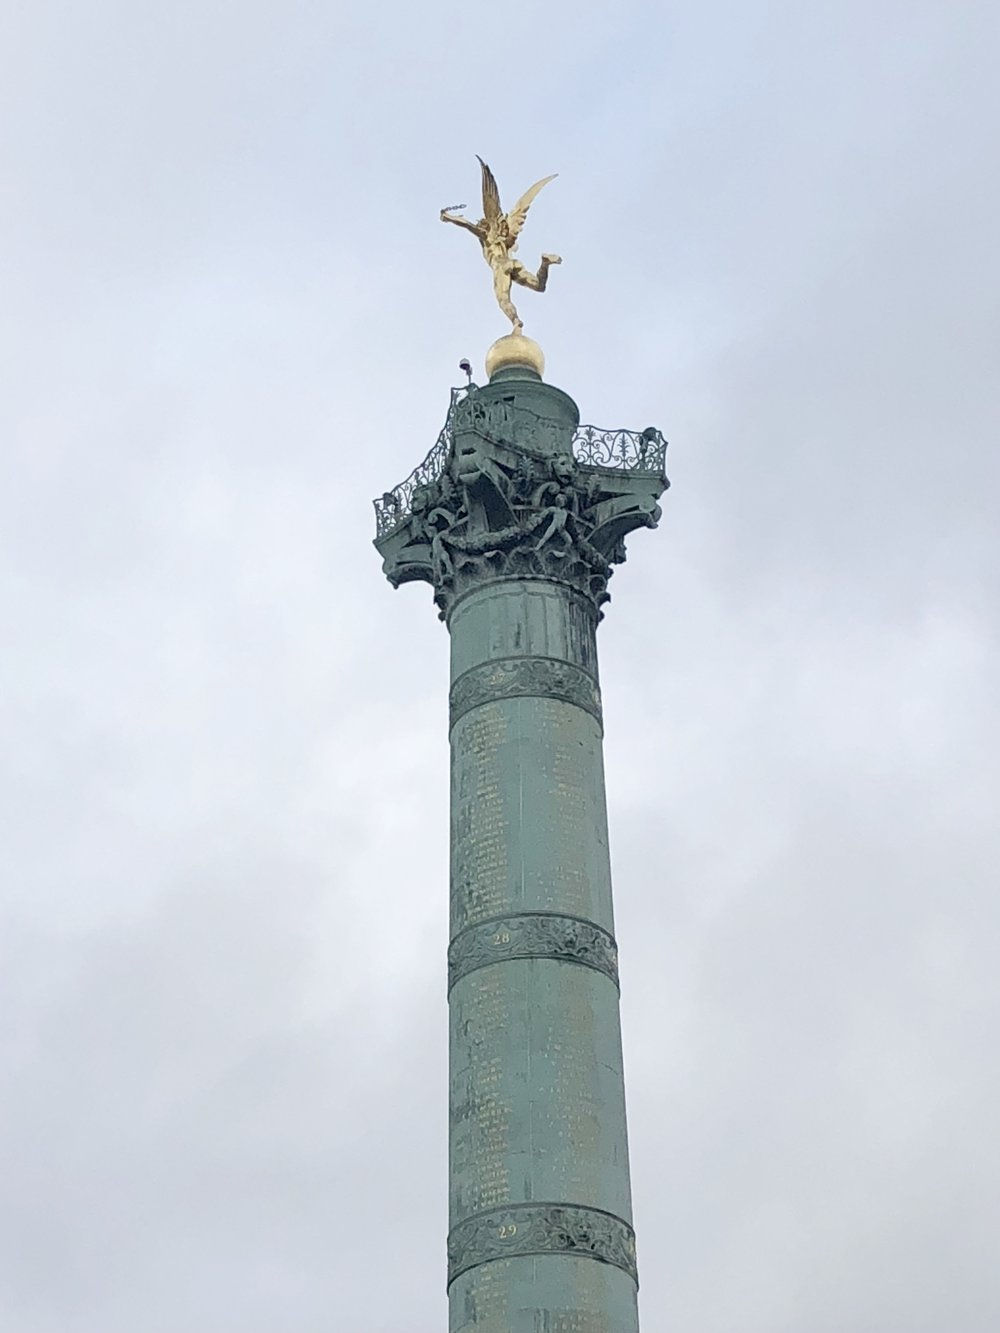 July Column w/ Liberty Statue, Place de la Bastille